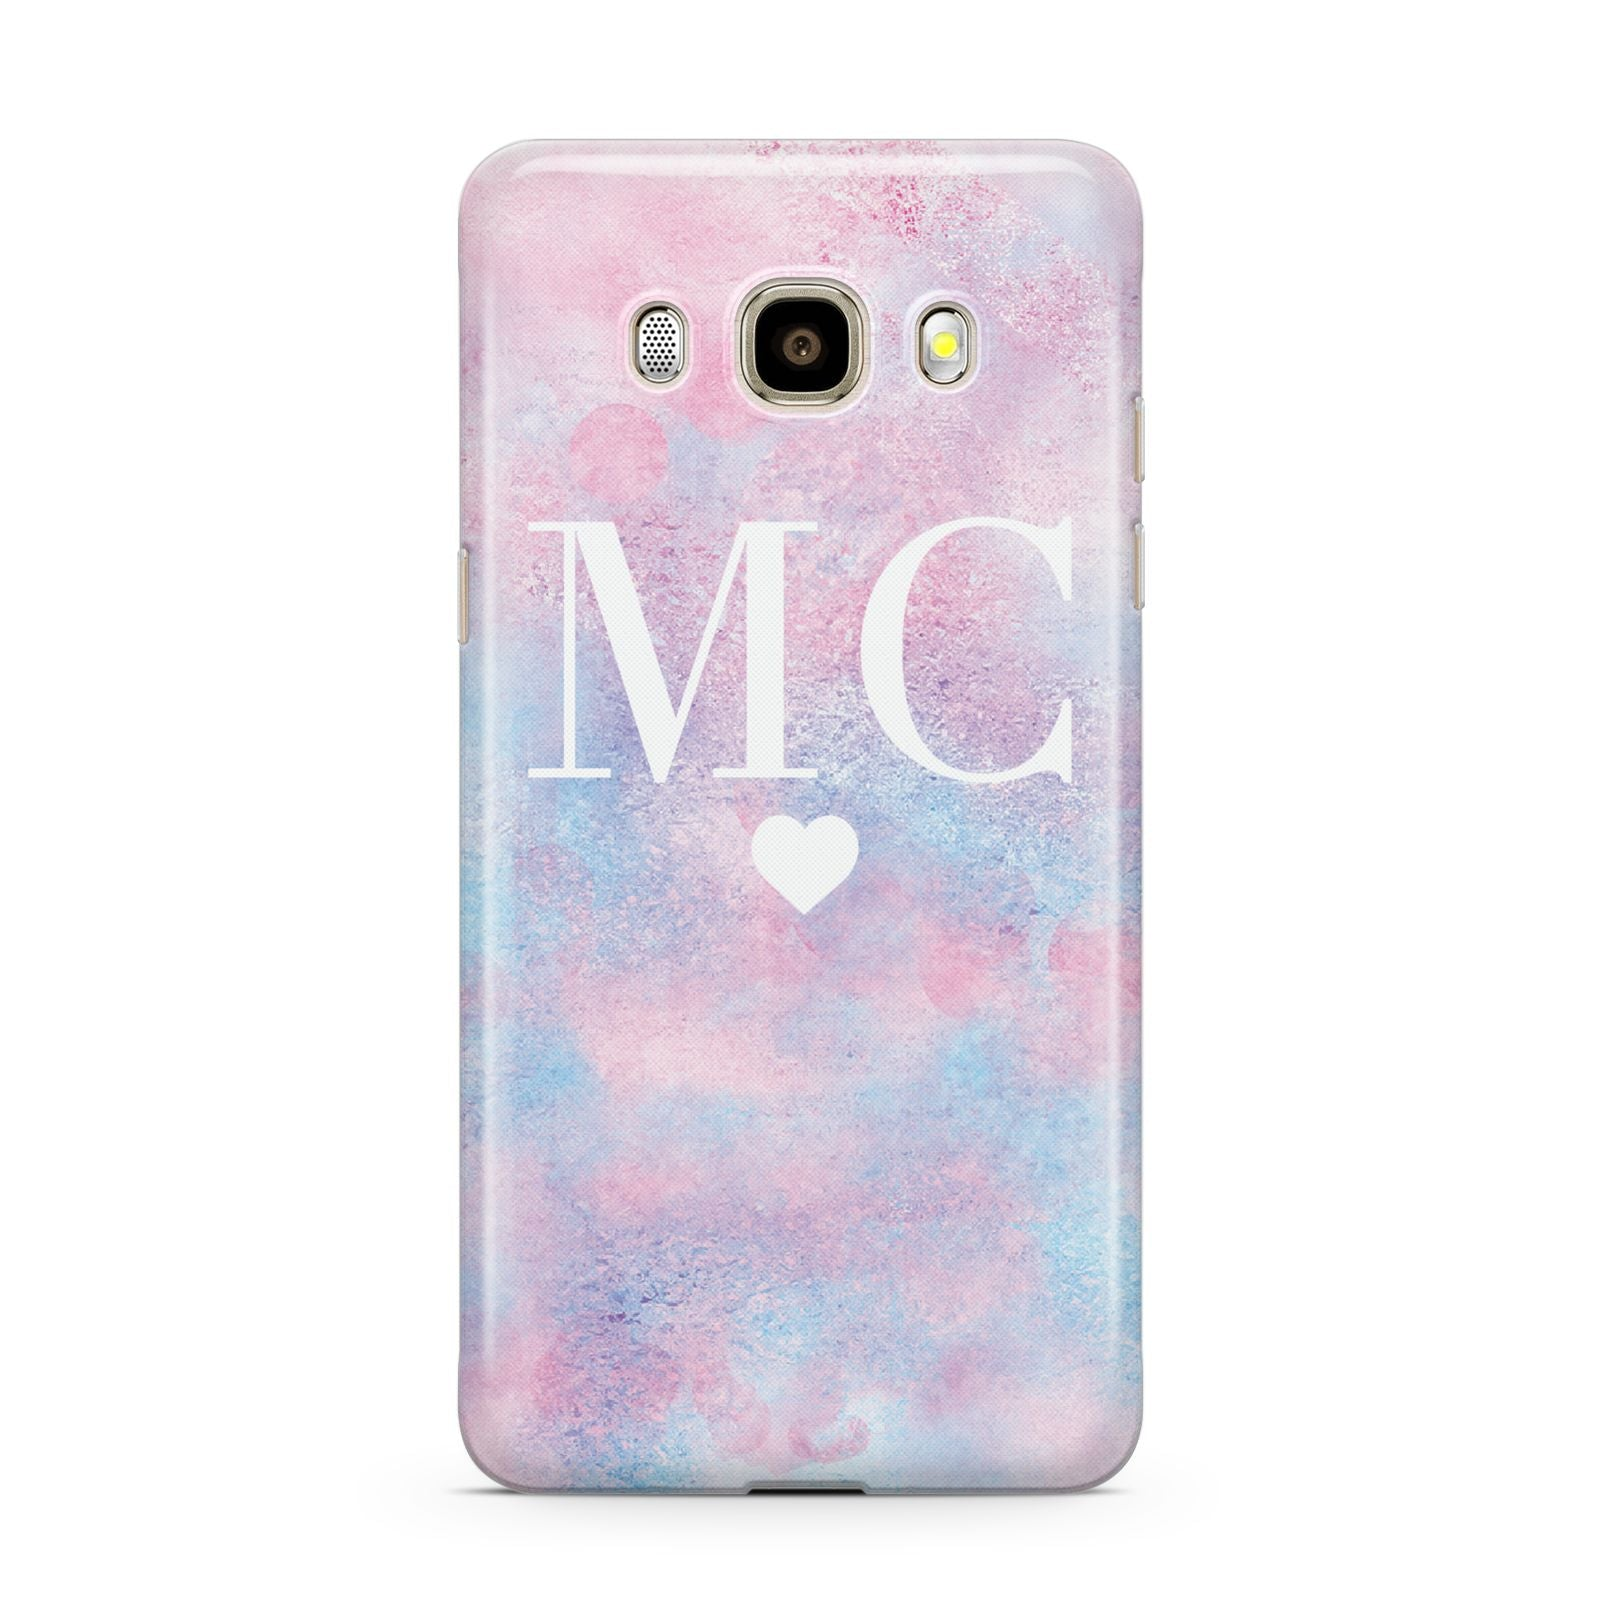 Personalised Cotton Candy Marble Initials Samsung Galaxy J7 2016 Case on gold phone